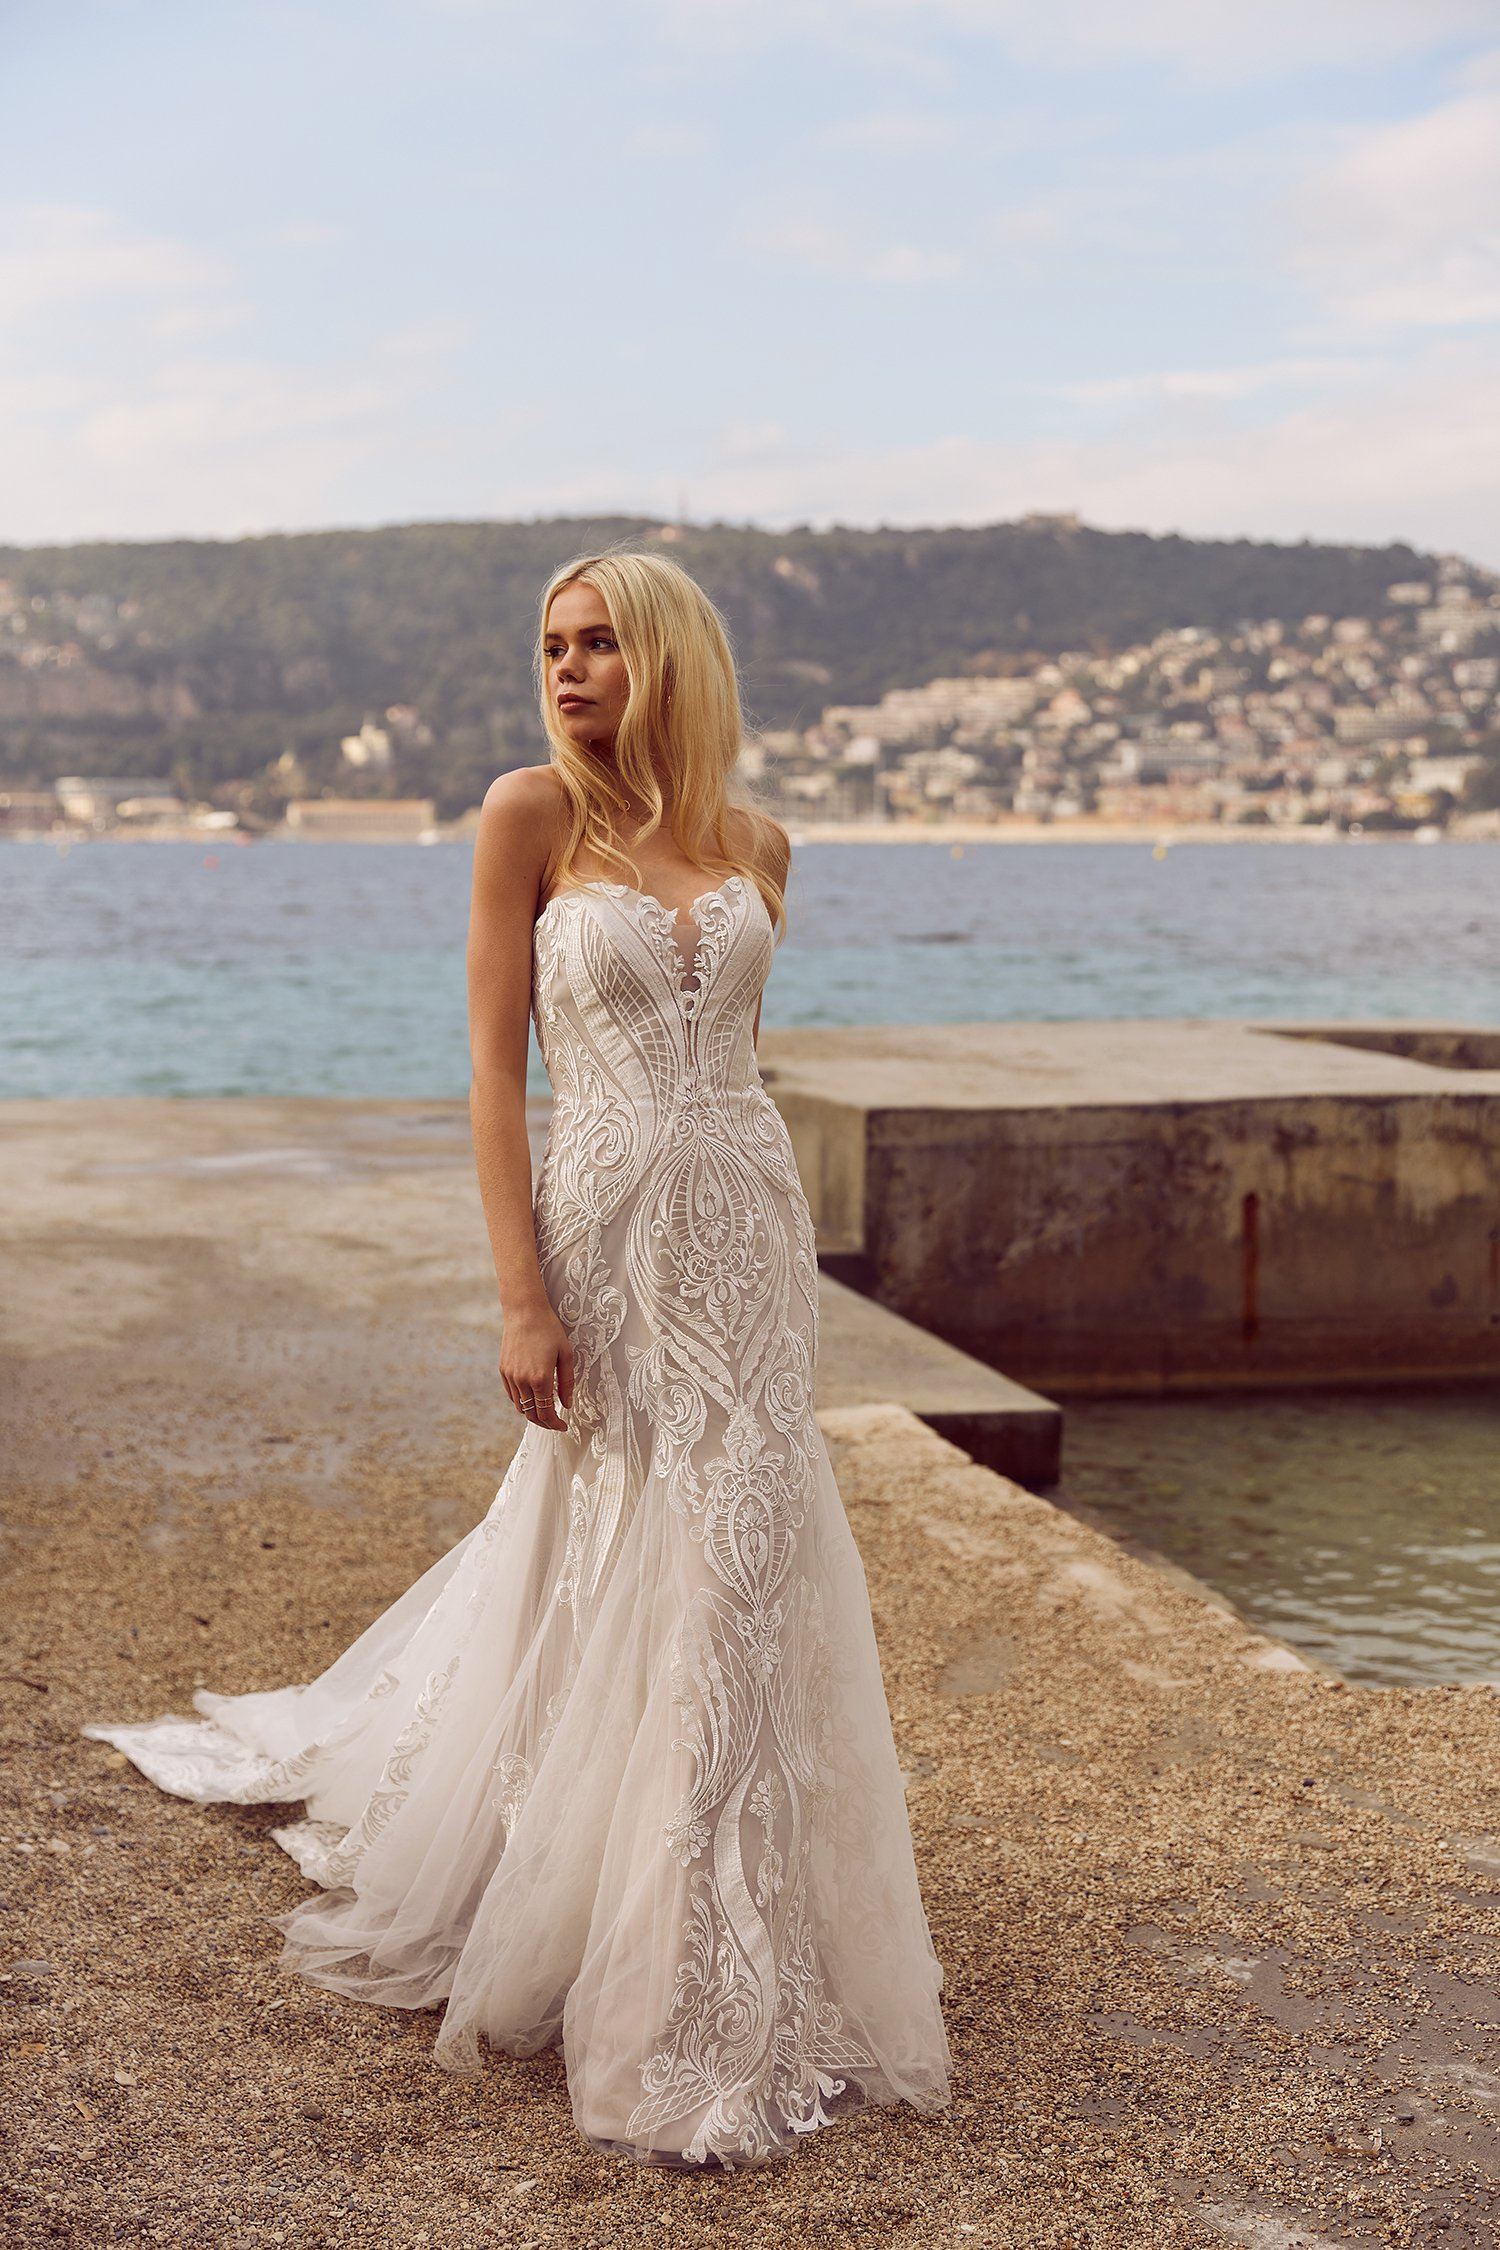 ROZA-ML3918-FRENCH-LACE-FITTED-GOWN-WITH-DETACHABLE-LACE-AND-TULLE-STRAPS-WEDDING-DRESS-MADI-LANE-BRIDAL-3